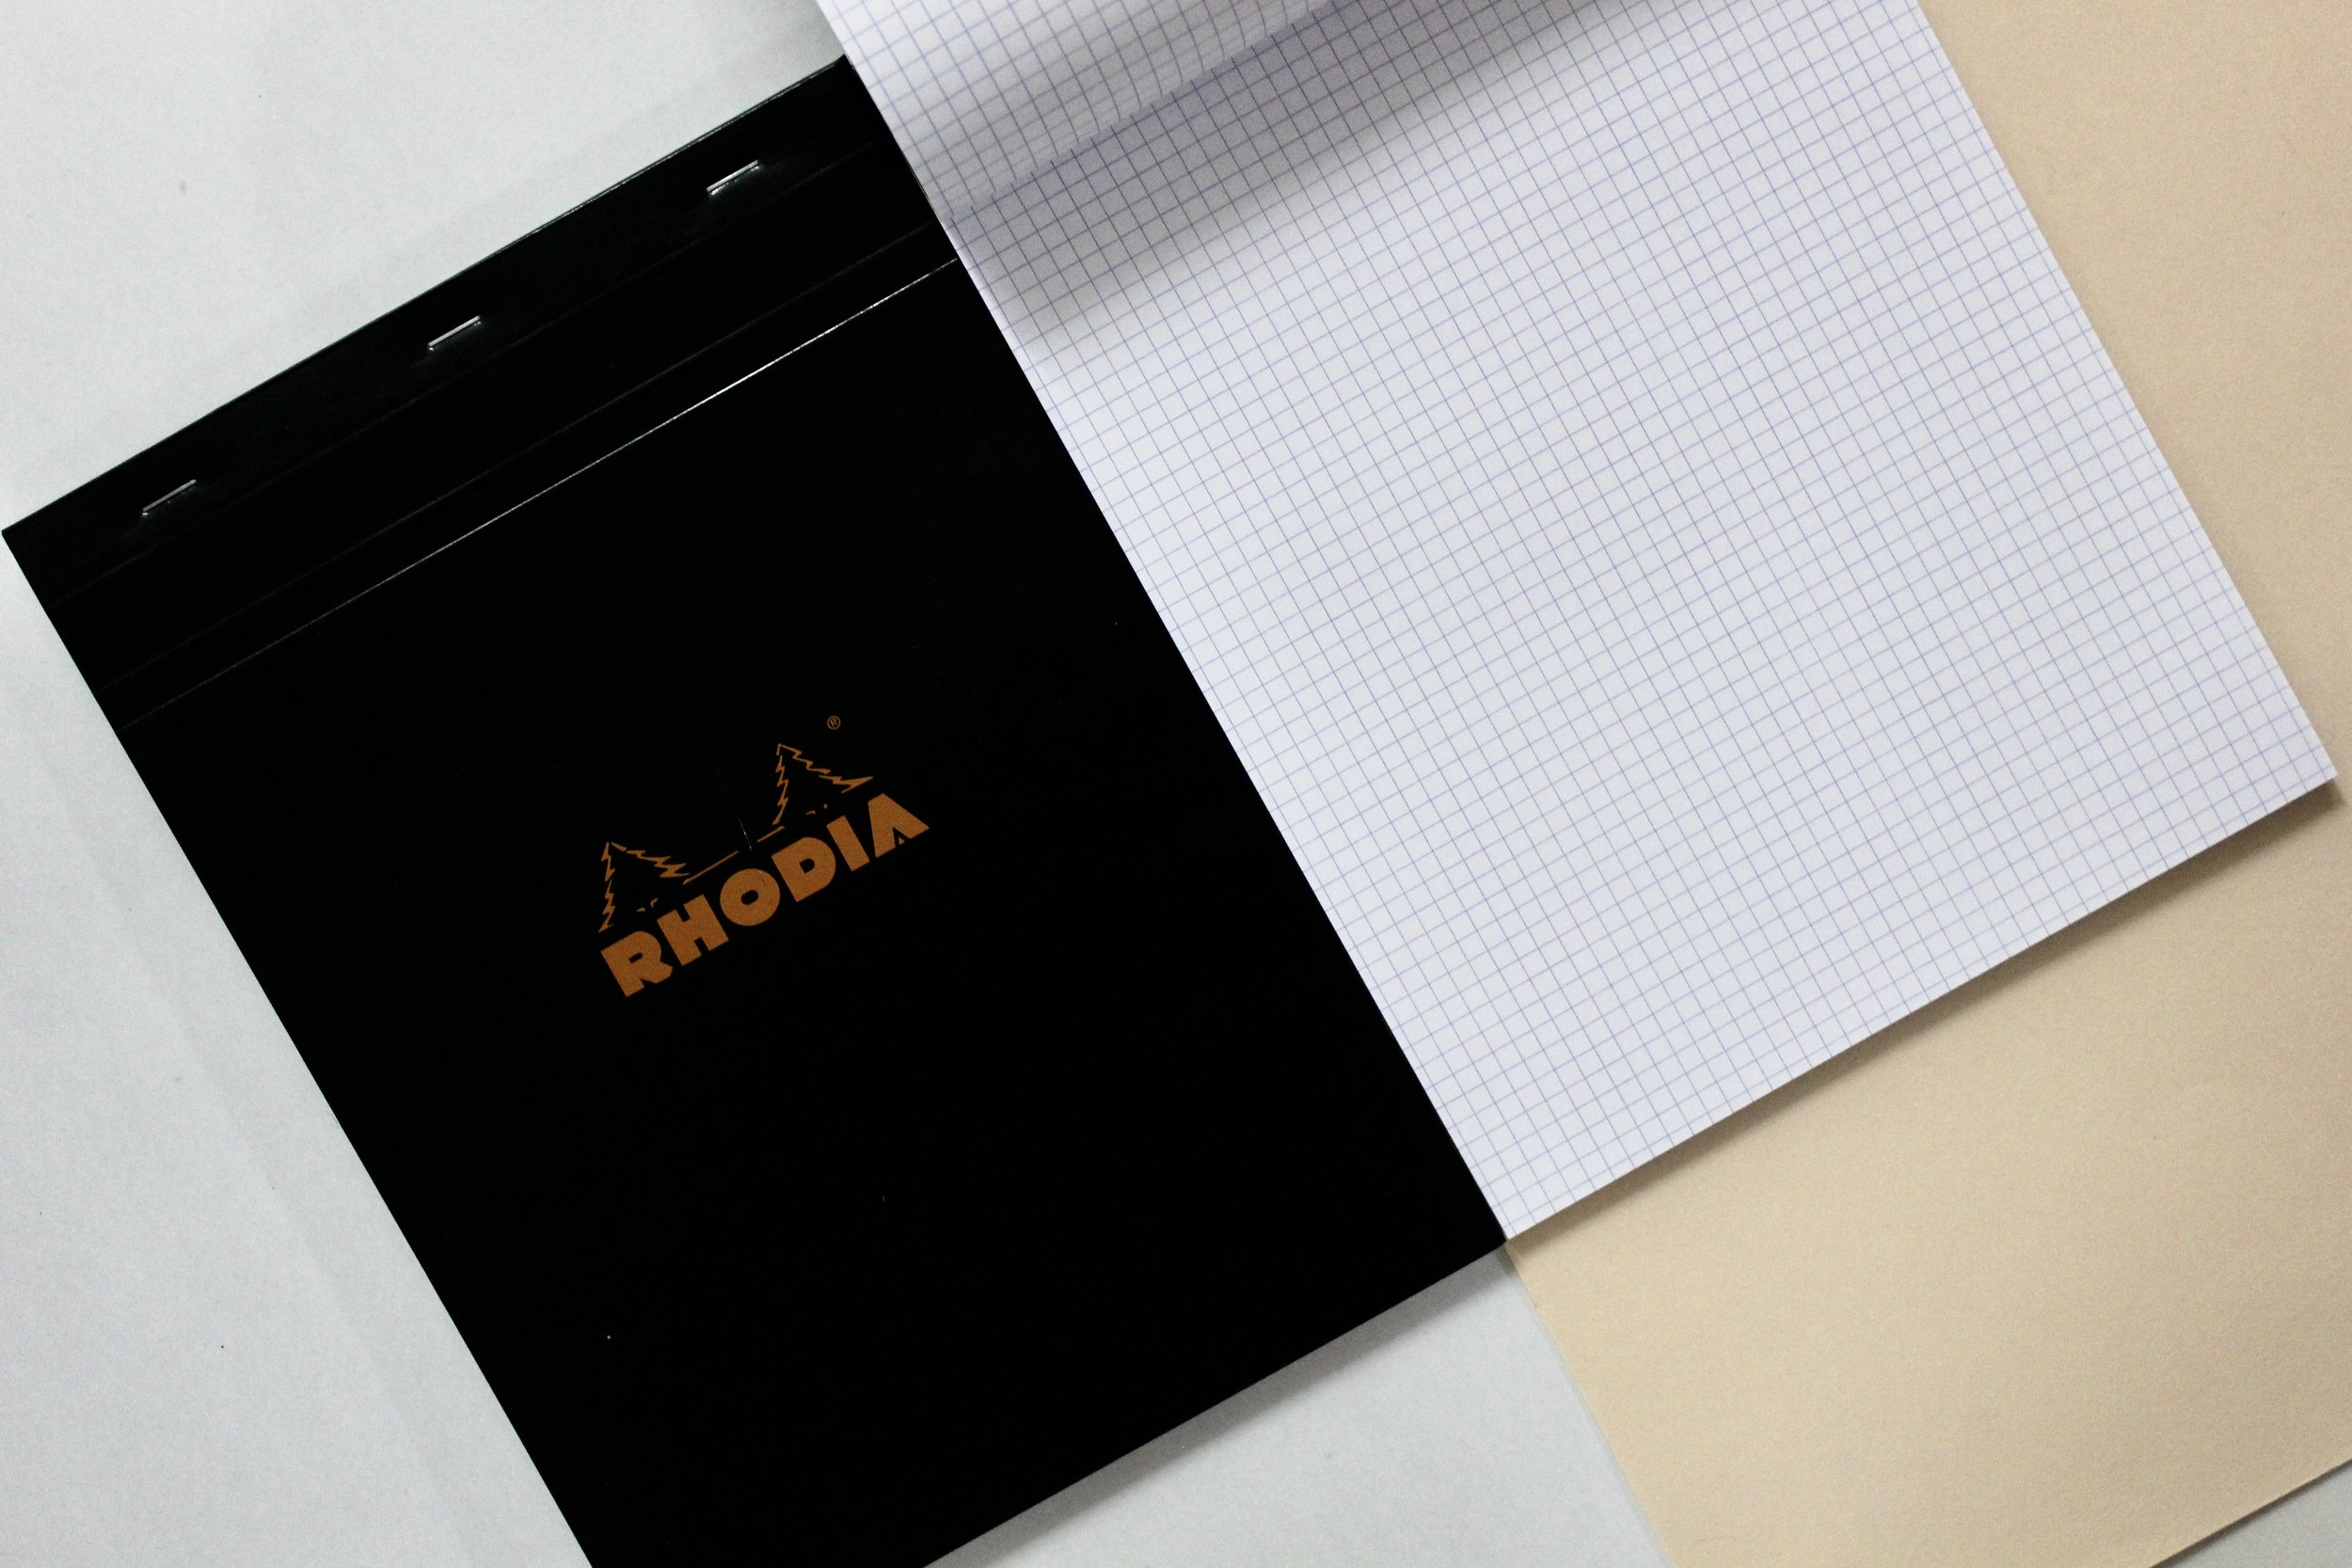 Rhodia Basics / A4 Grid ★ 80 sheets ($10)